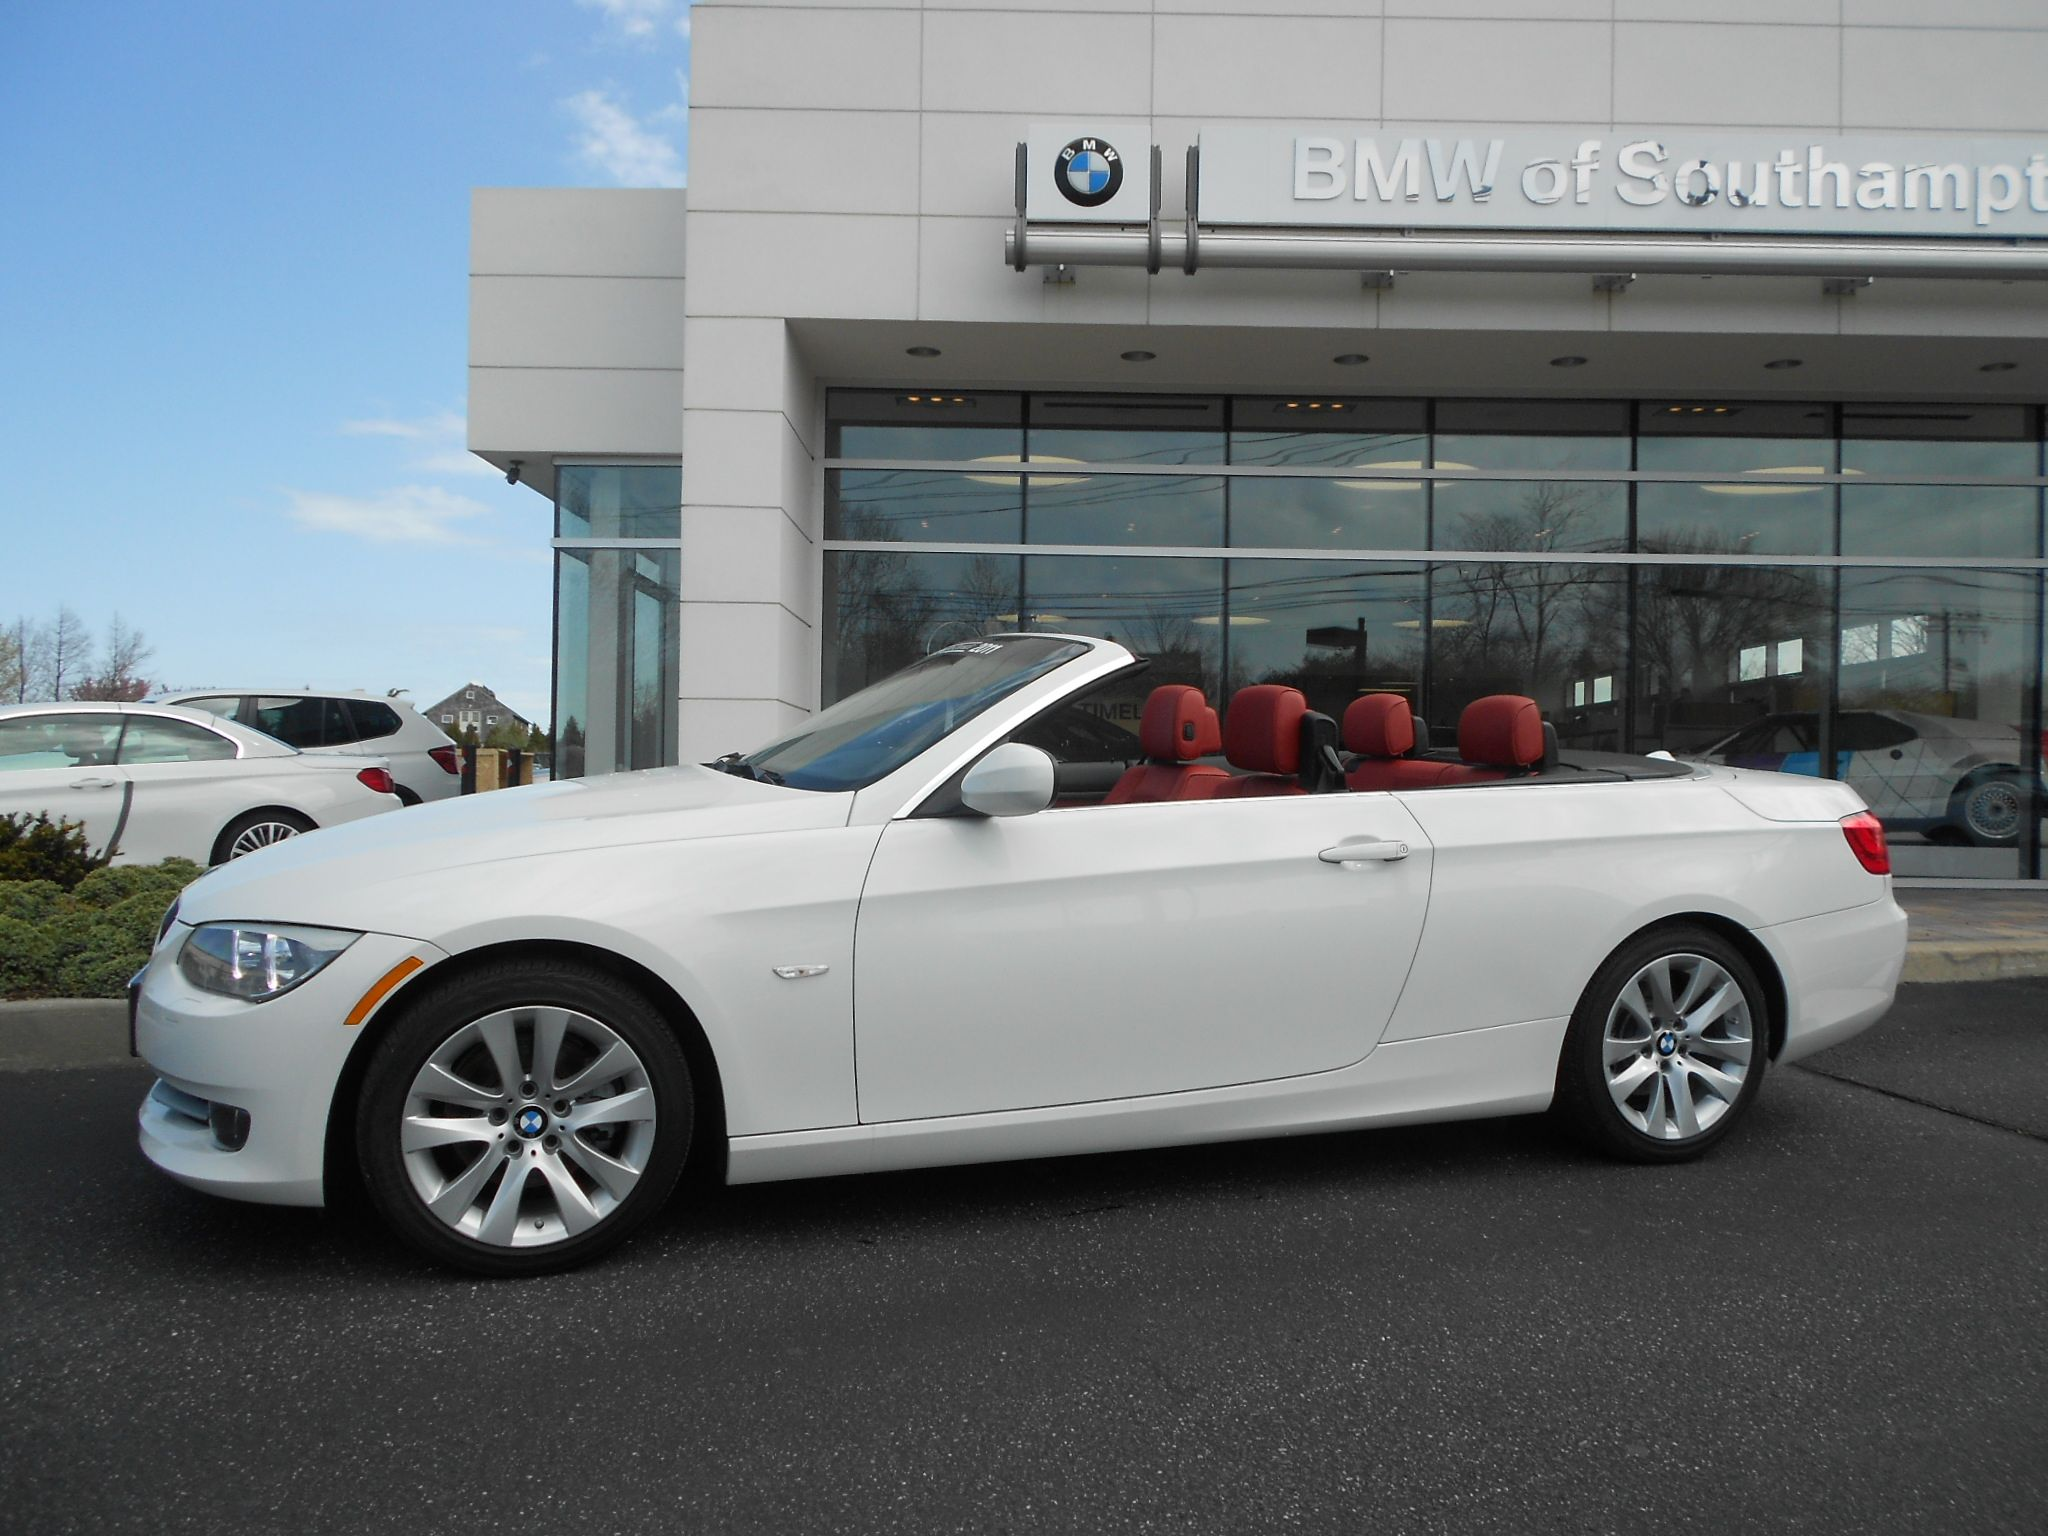 certified used 2011 bmw 328i convertible 3 for sale in southampton ny wbadw7c58be542725 2011bmw bmw328iconvertible bmwconvertible southampton bmw  [ 2048 x 1536 Pixel ]